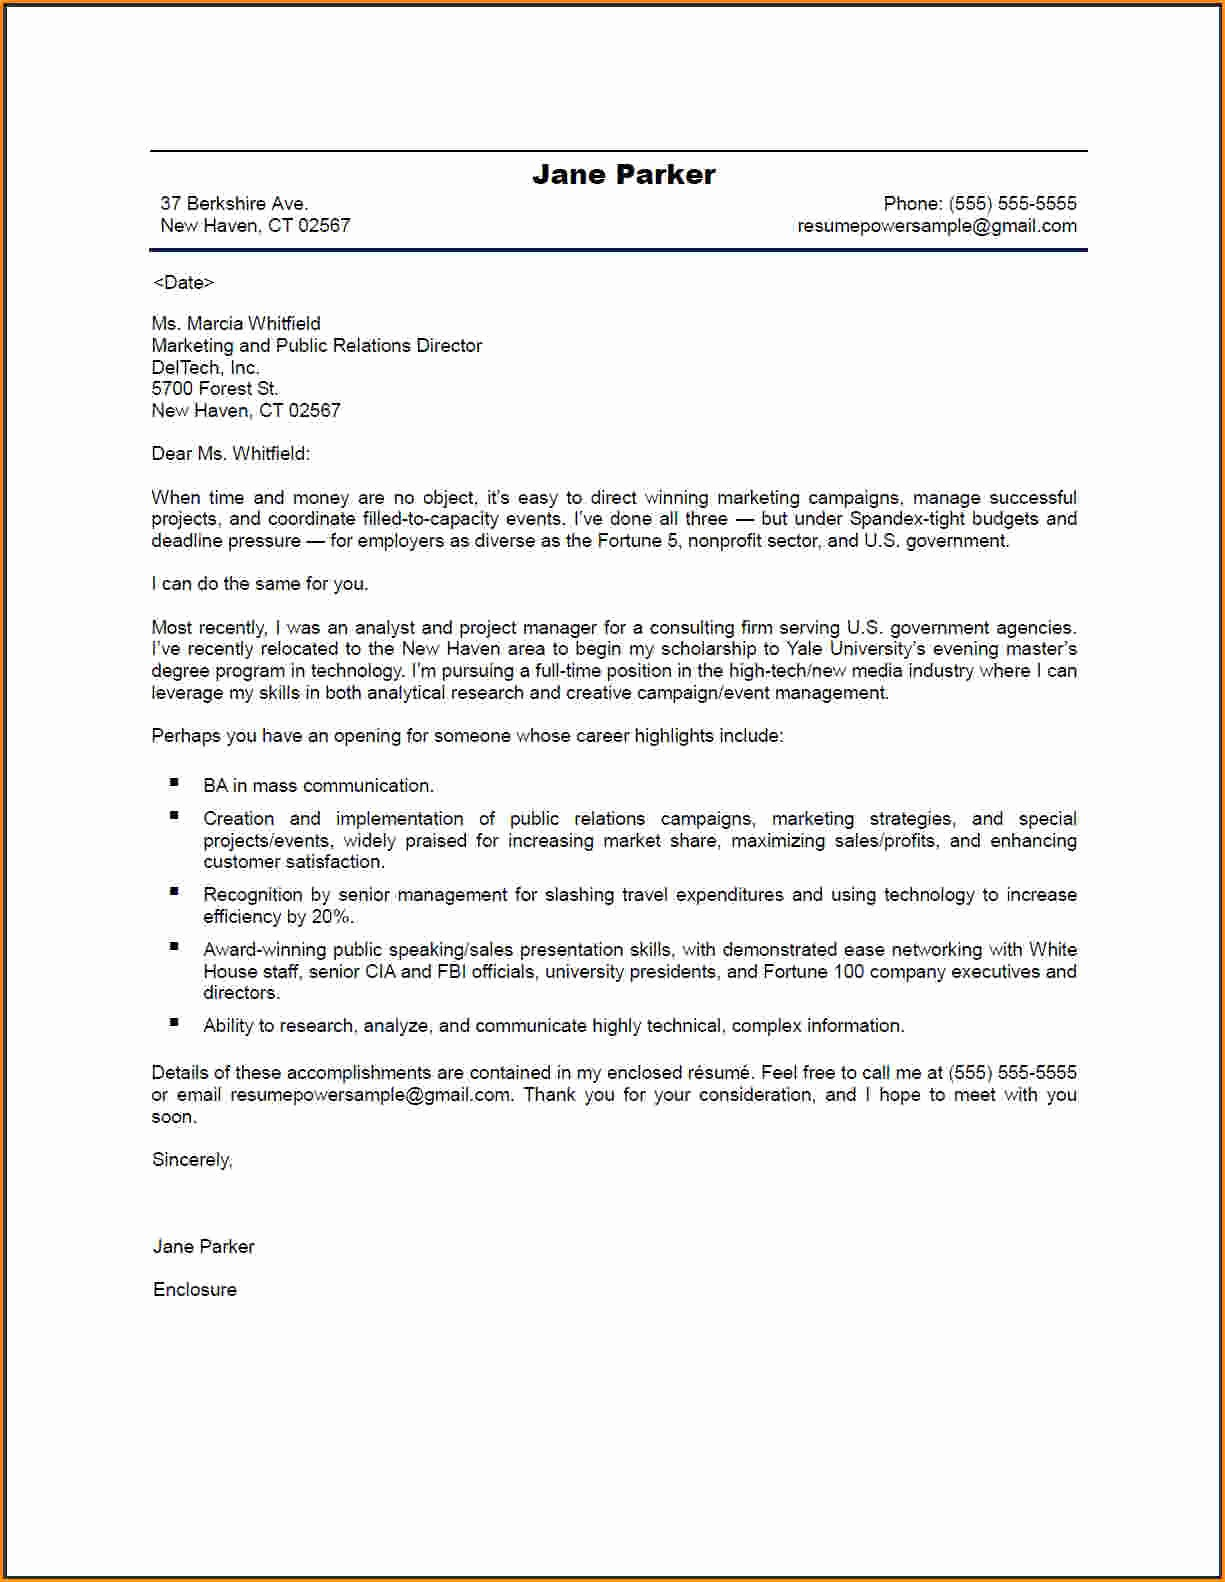 Professional Cover Letters for Resume New 4 Good Cover Letters for Resume